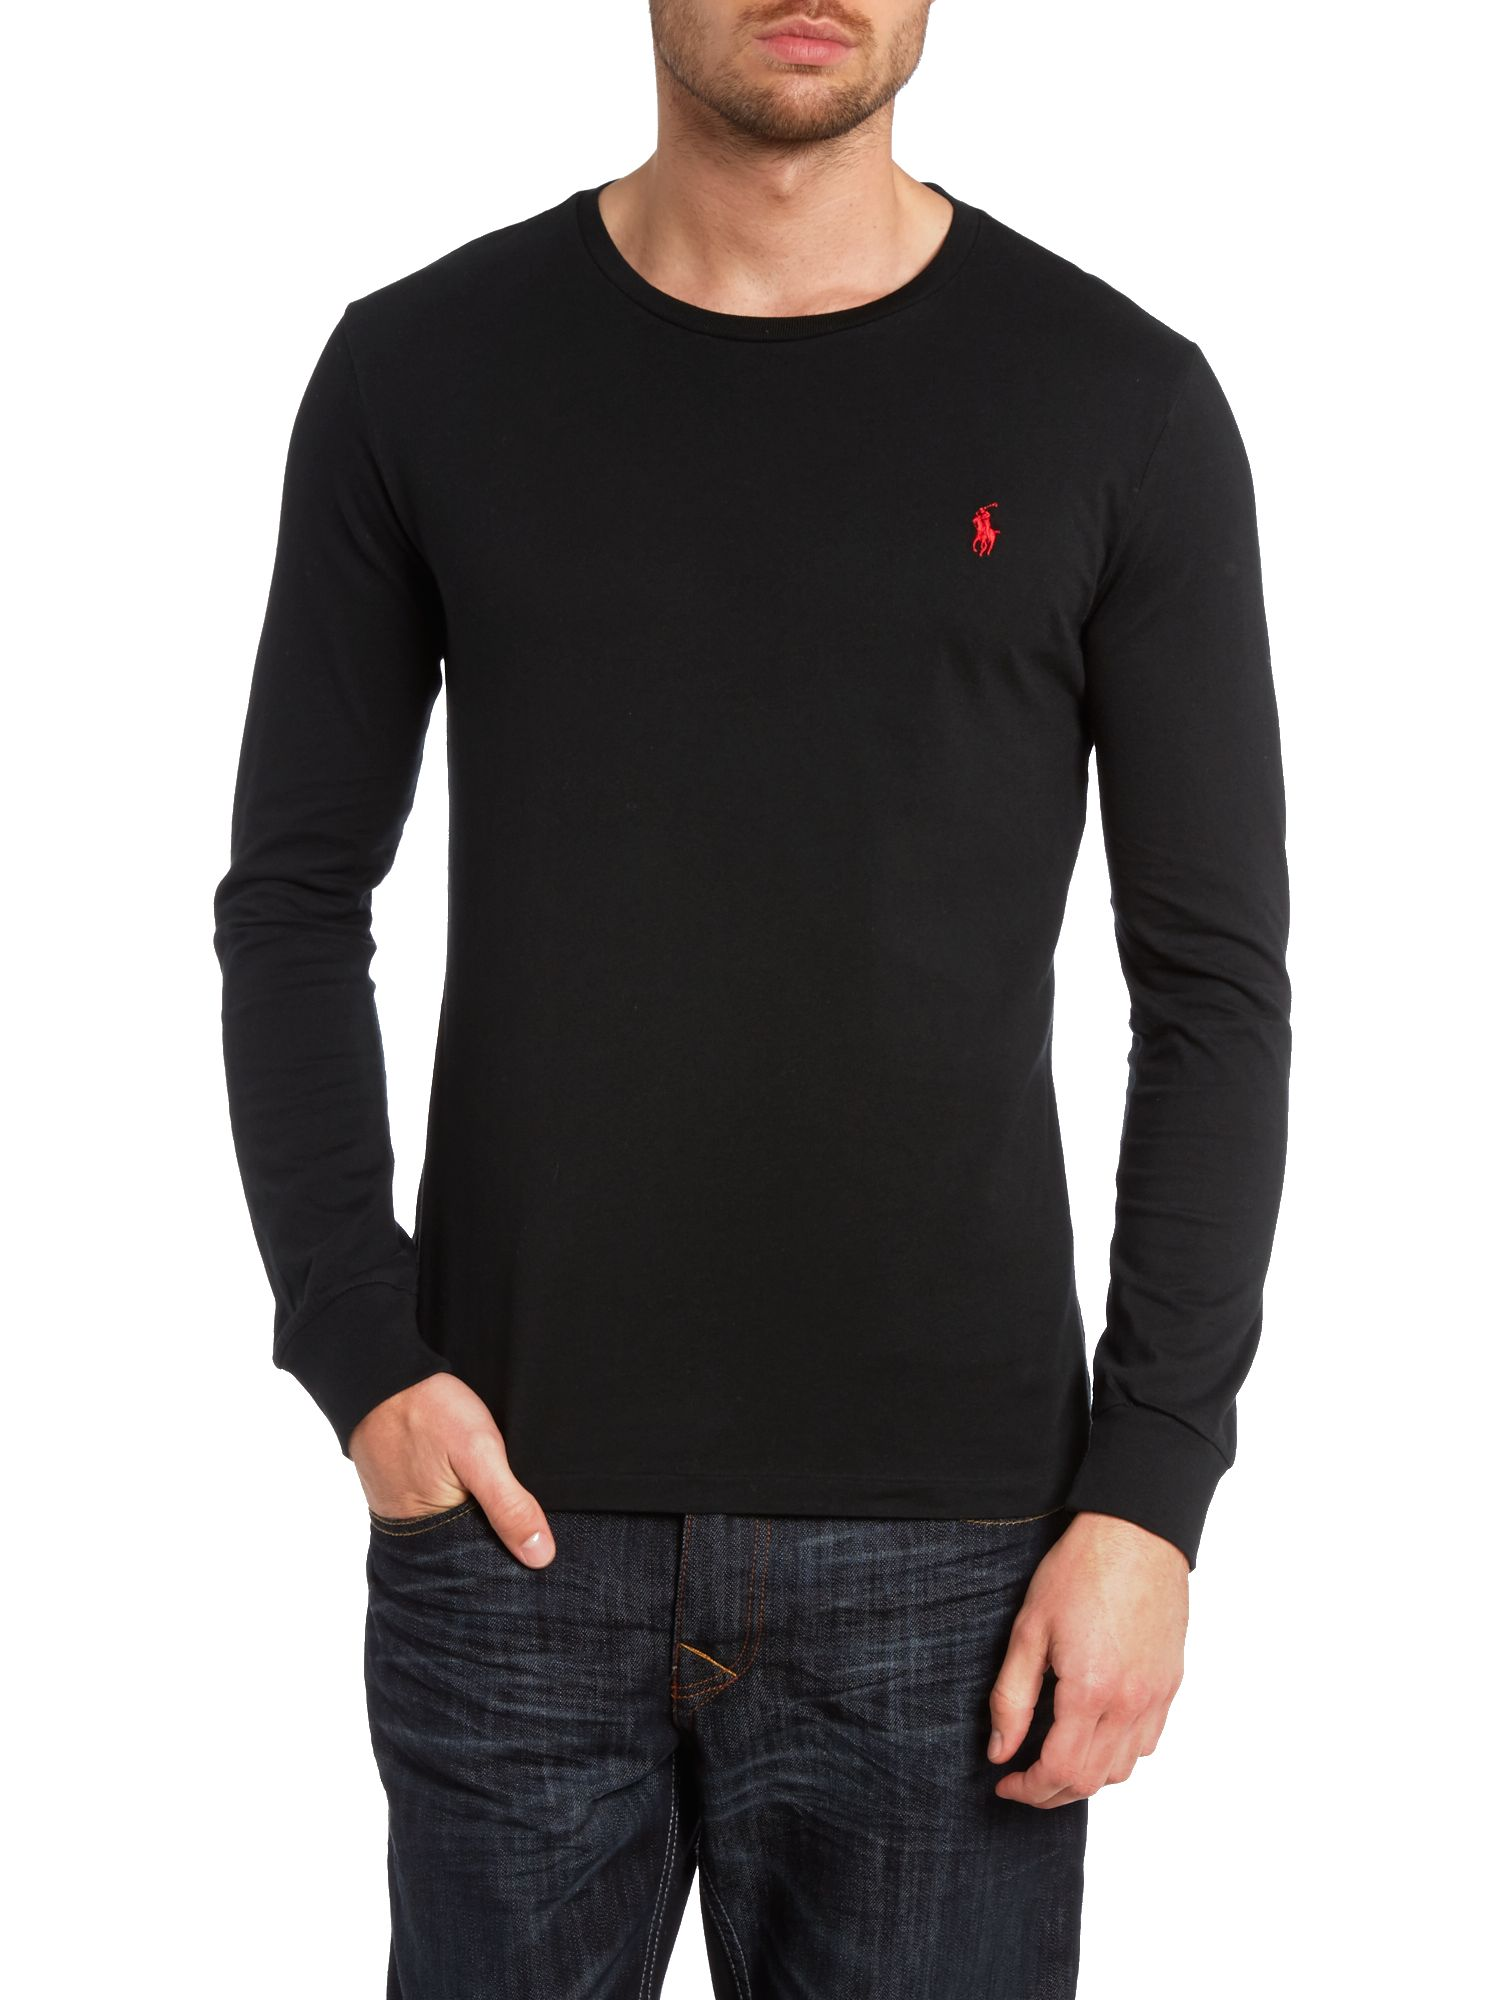 Crew neck combed jersey long sleeve tshirt